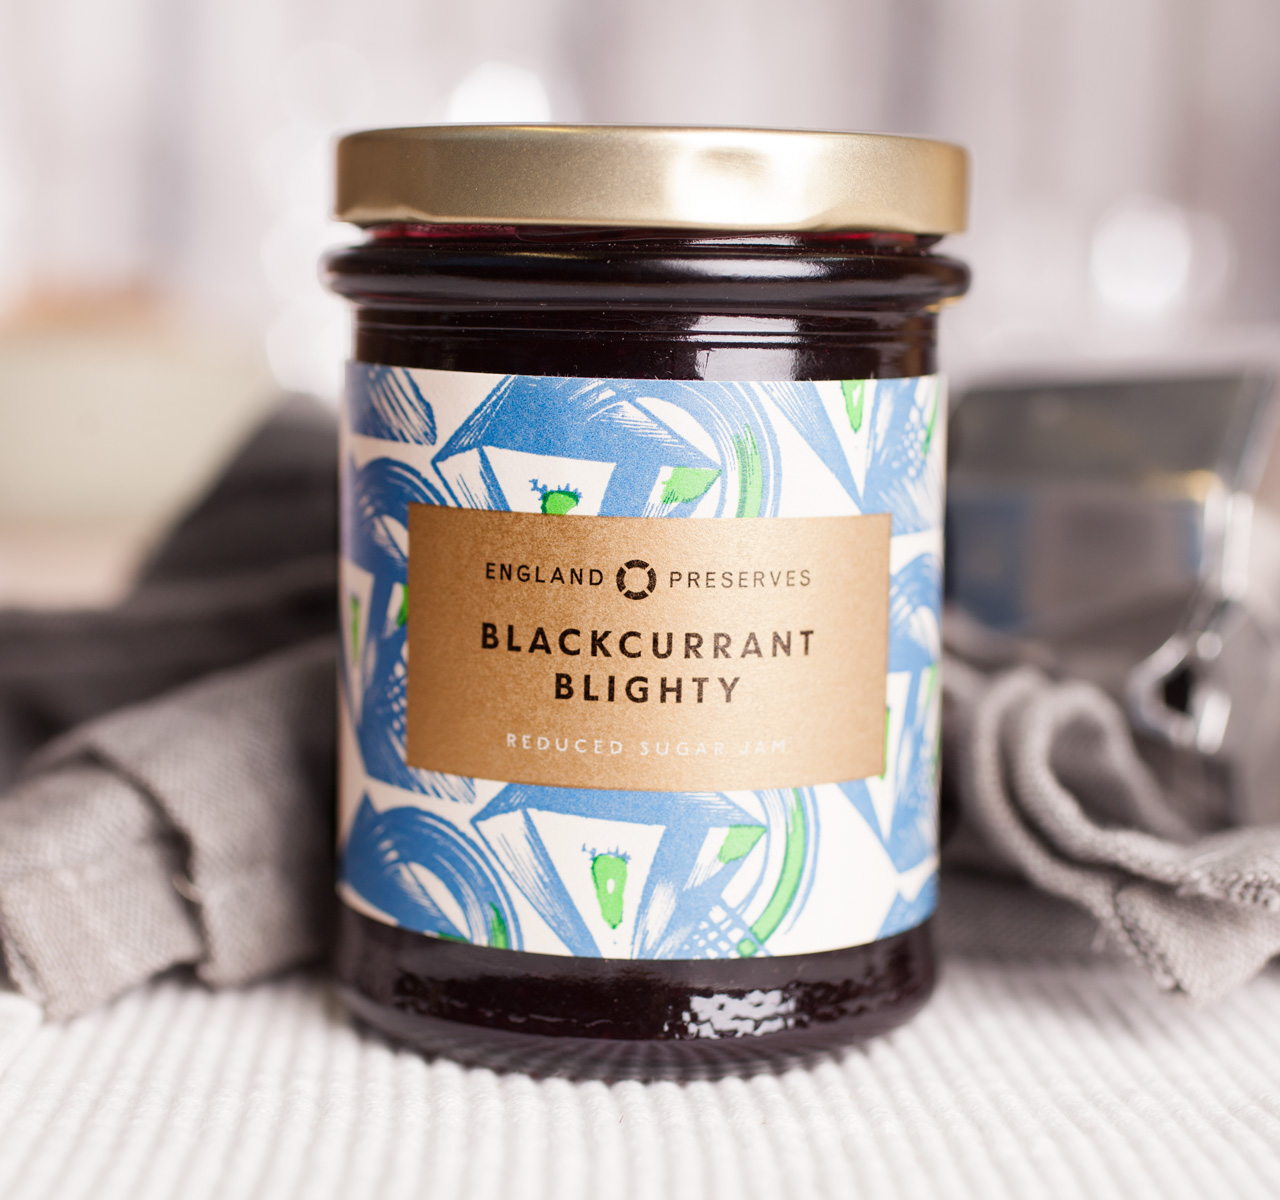 schwarze johannisbeermarmelade blackcurrant blighty von england preserves kaufen foodist. Black Bedroom Furniture Sets. Home Design Ideas